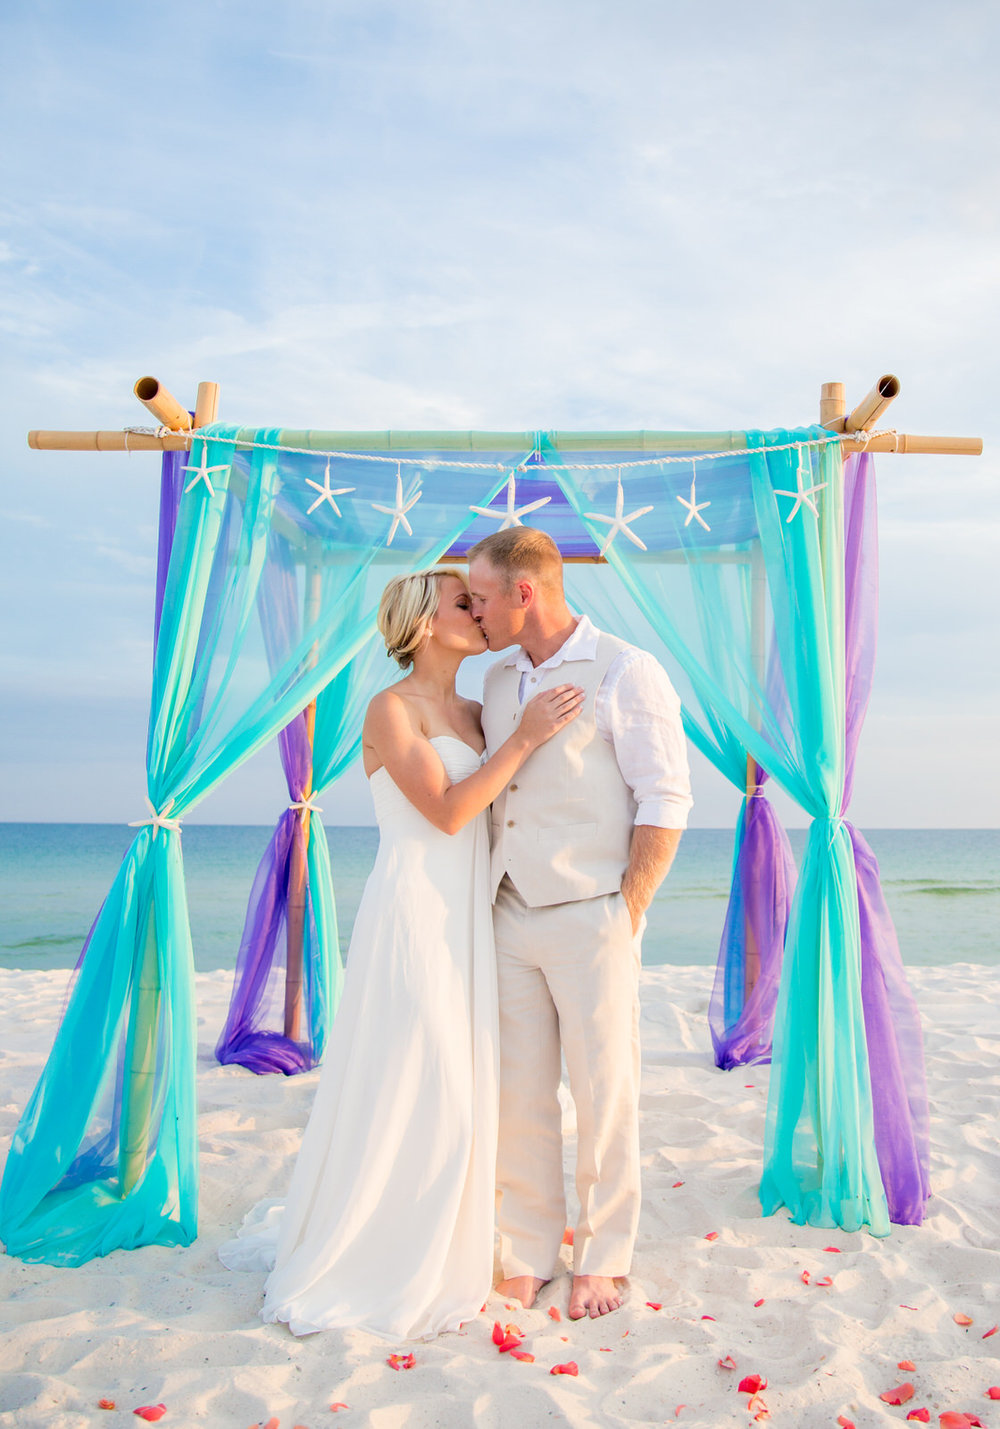 Easy Options for Alabama Beach Wedding Planning